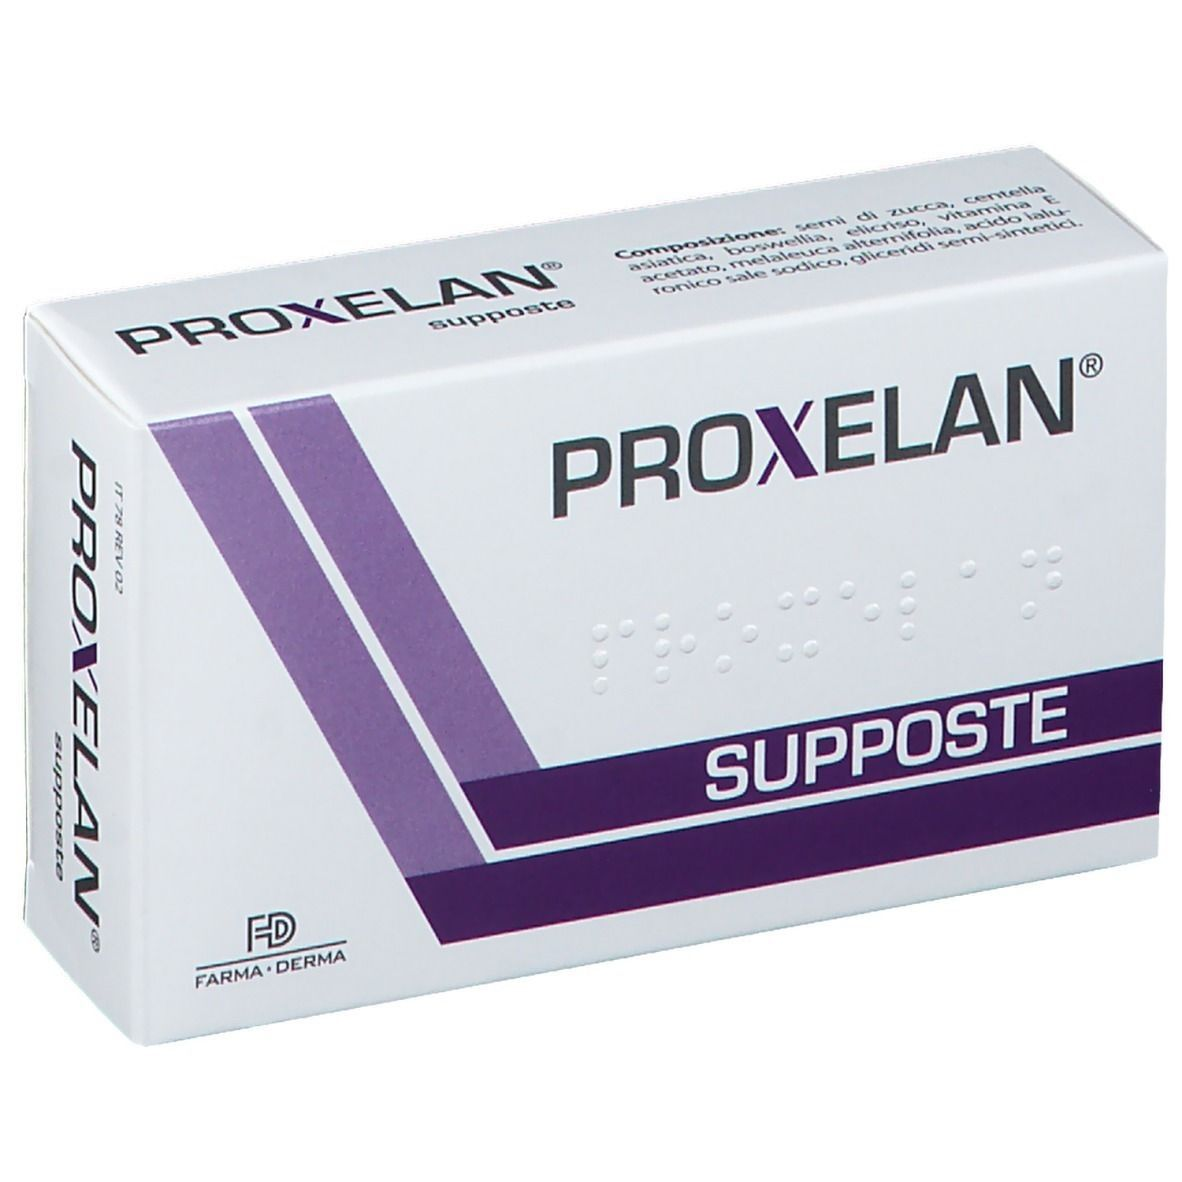 Farma-Derma Proxelan Supposte